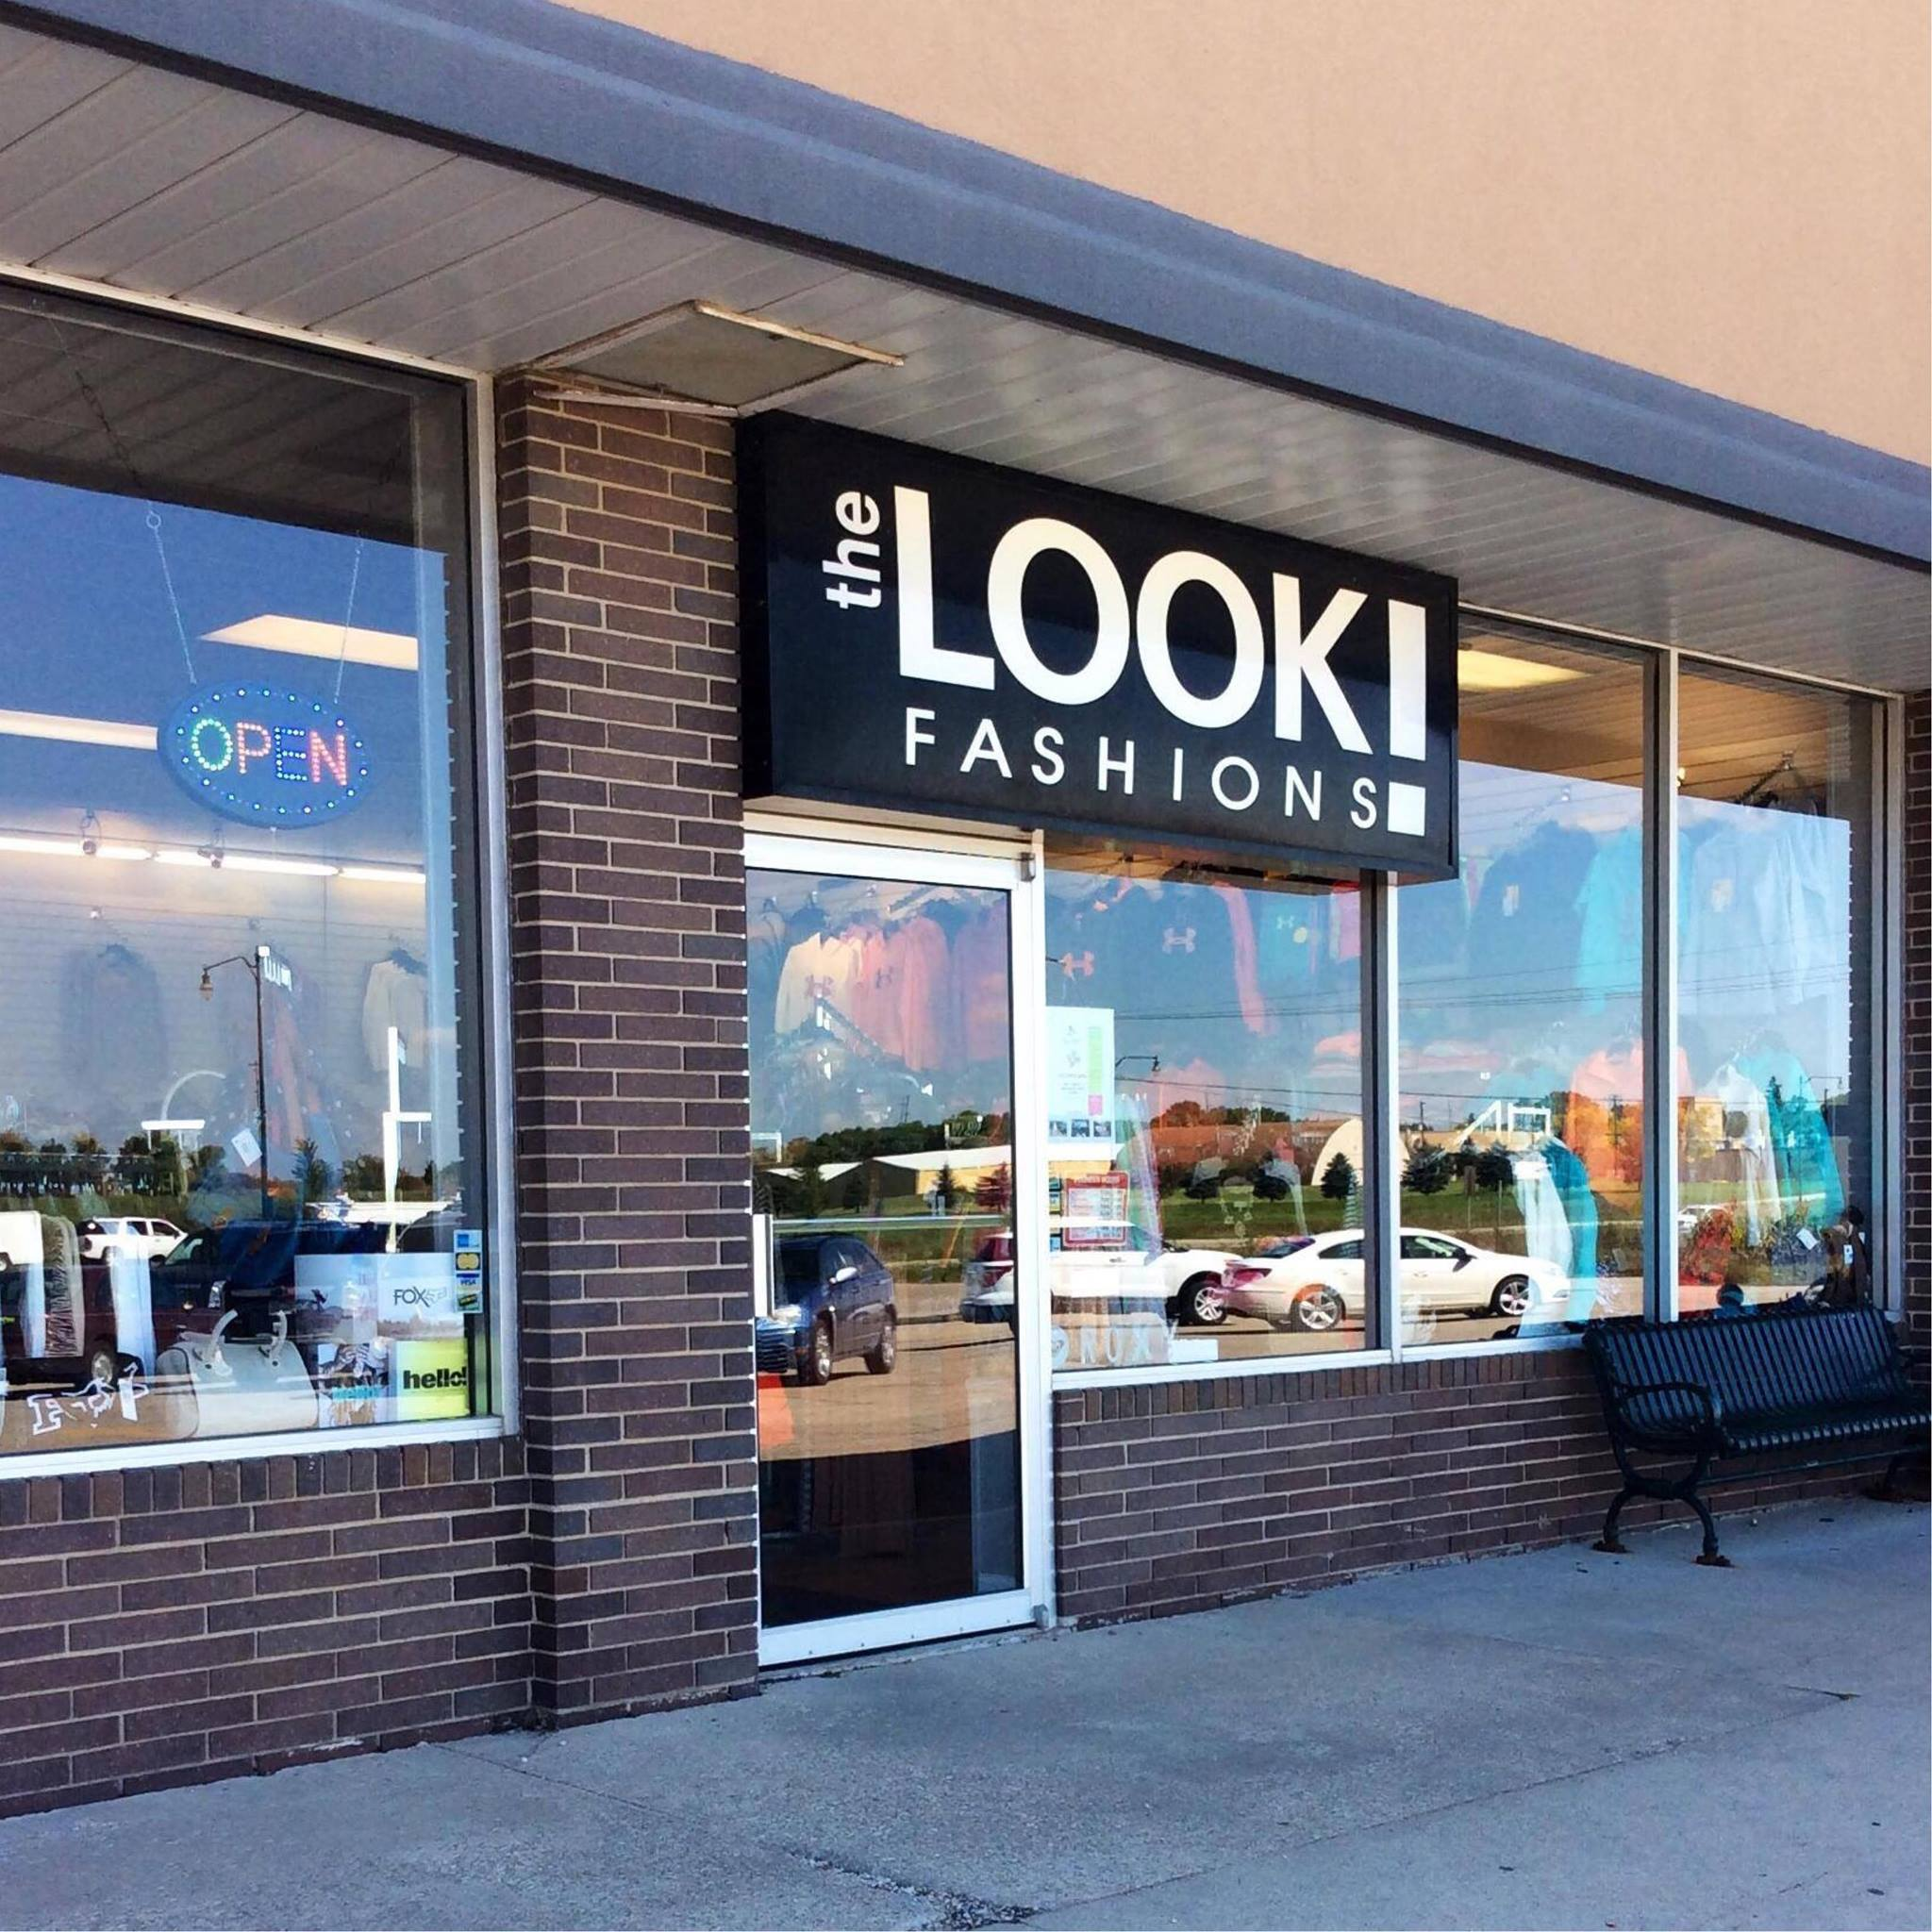 The Look Fashions: - Contemporary clothing, shoes and accessories712-336-3834